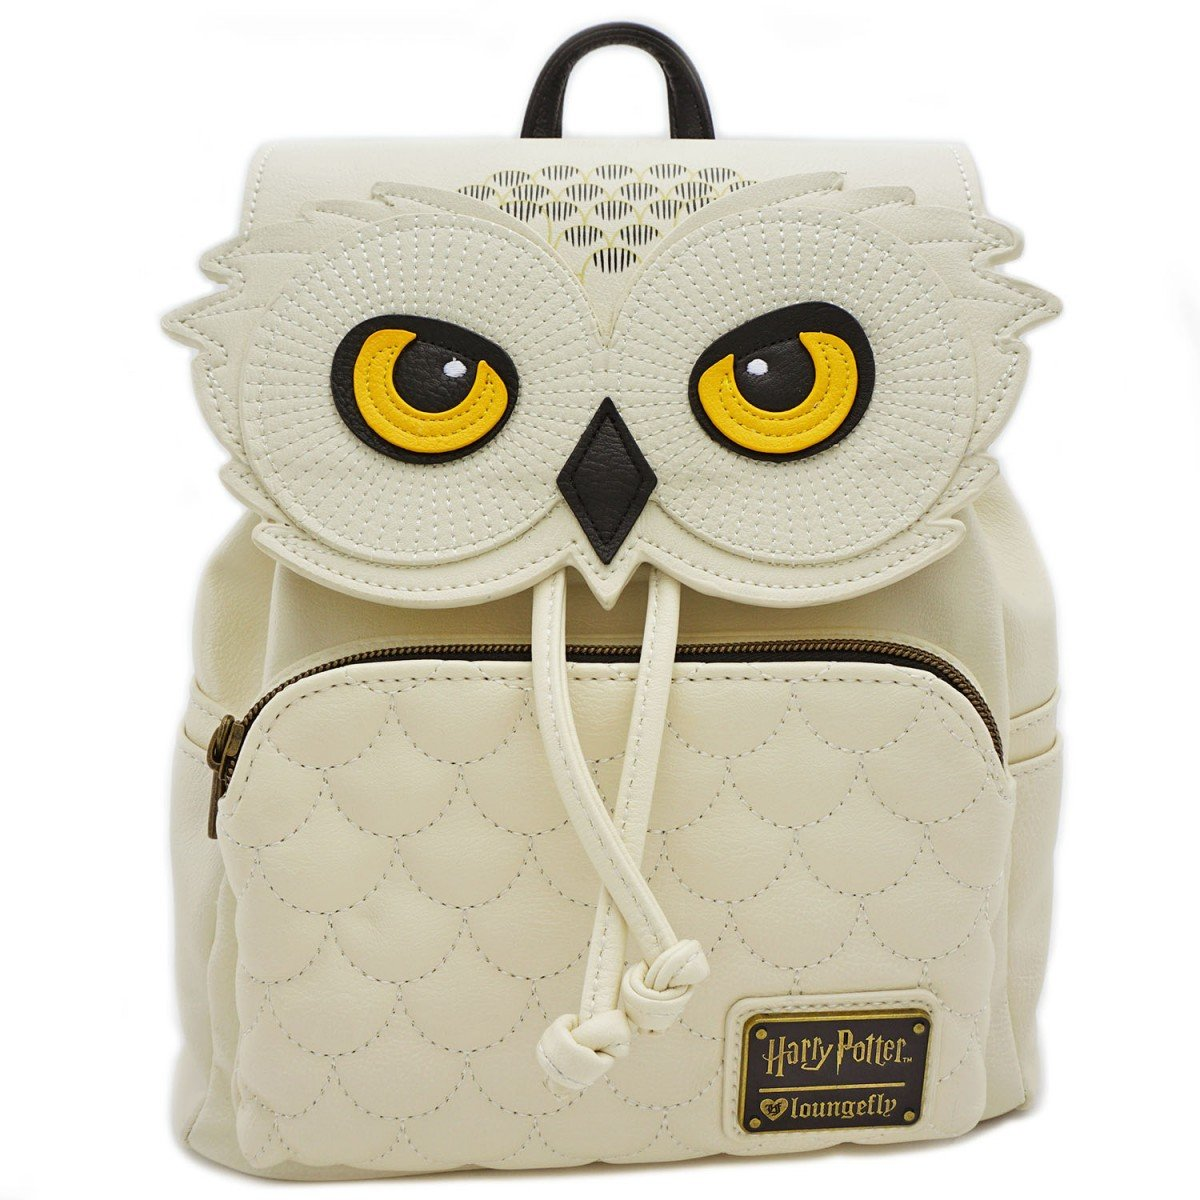 Harry potter by loungefly hedwig the owl mini backpack